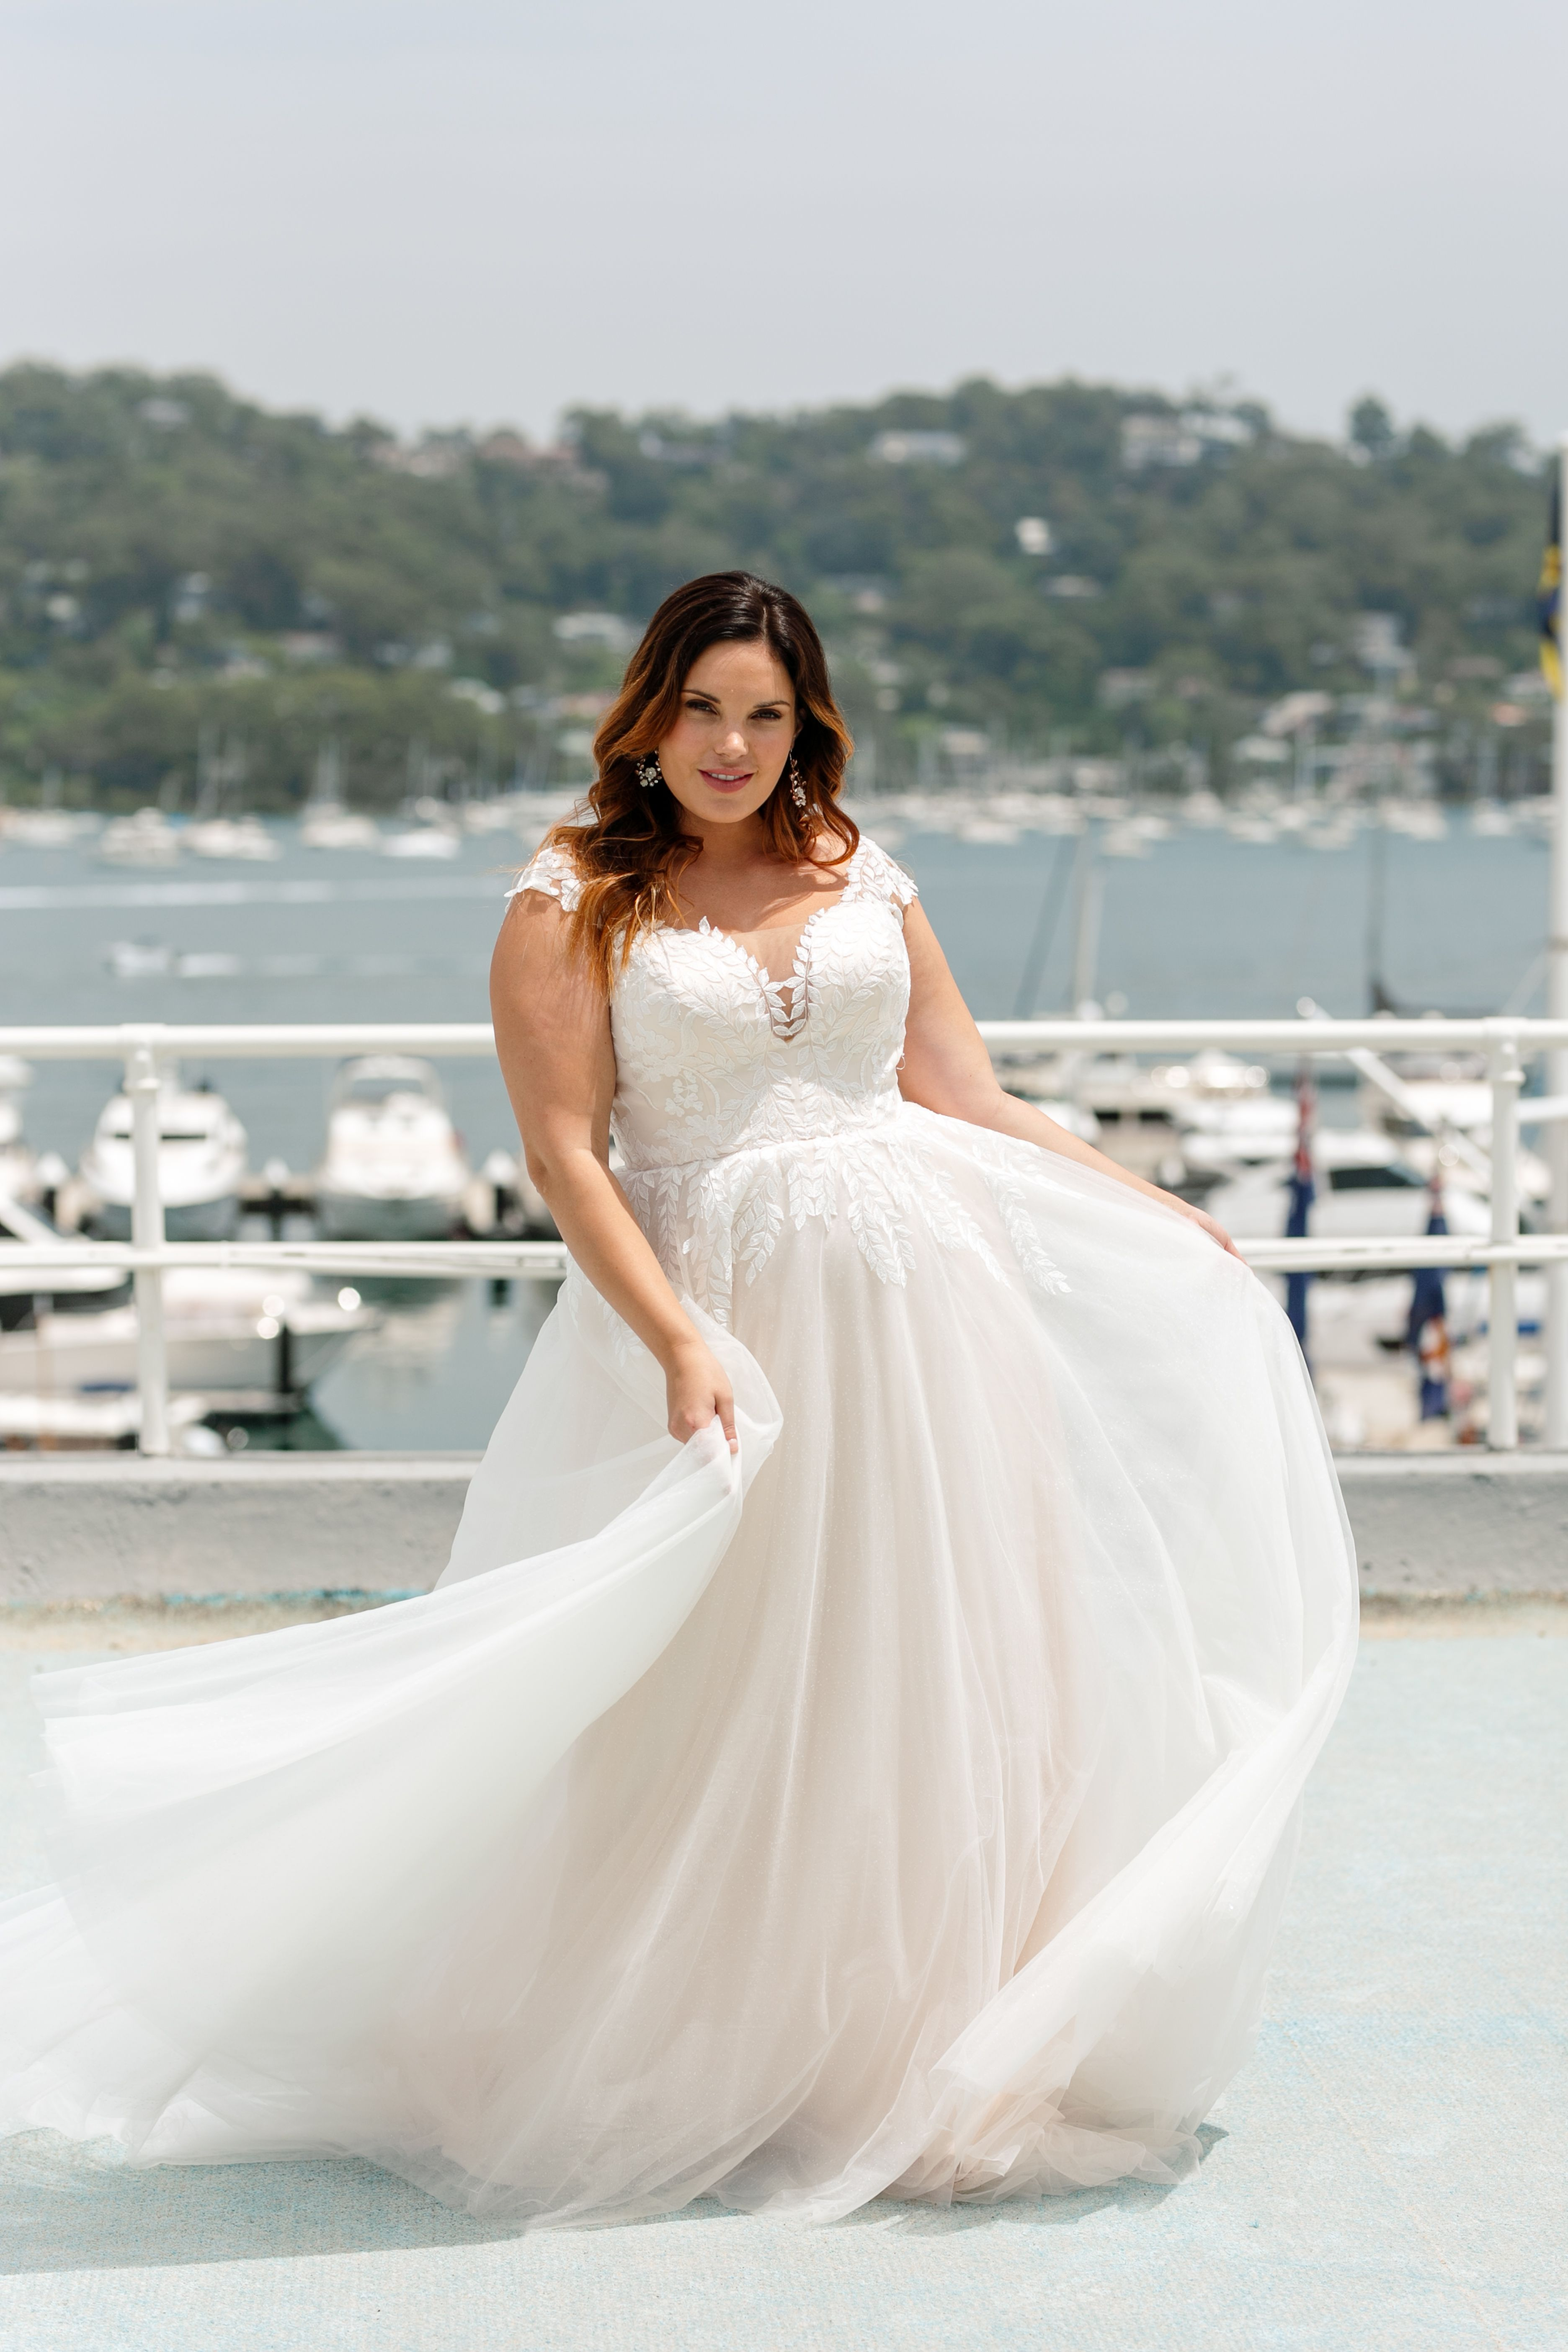 Curvaceous Bridal Gowns Plus Size Gowns Peter Trends In 2020 Curvy Wedding Dress Plus Size Gowns Bridal Gowns